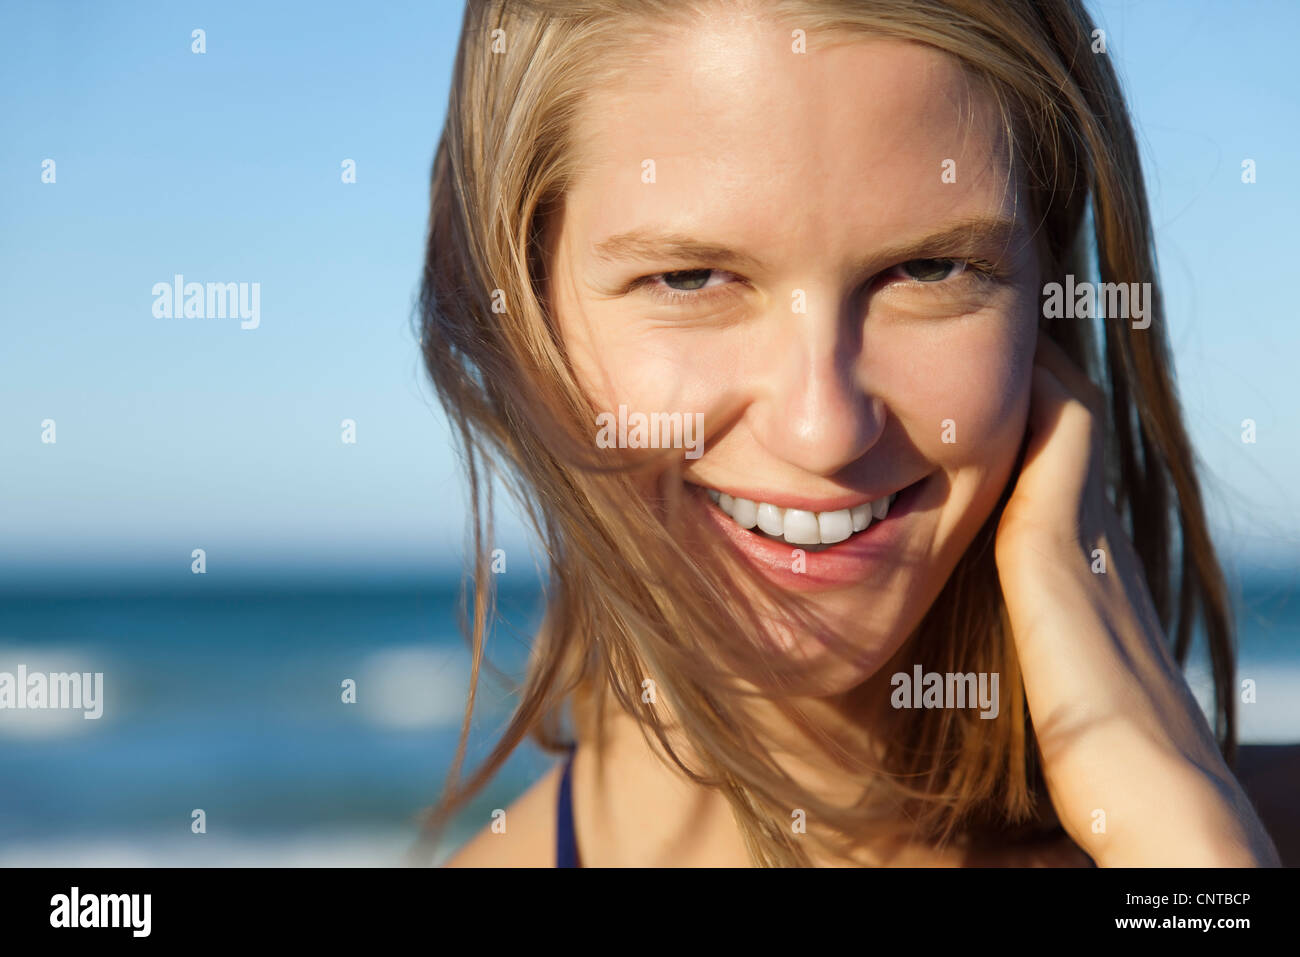 Smiling young woman with tousled hair, portrait - Stock Image